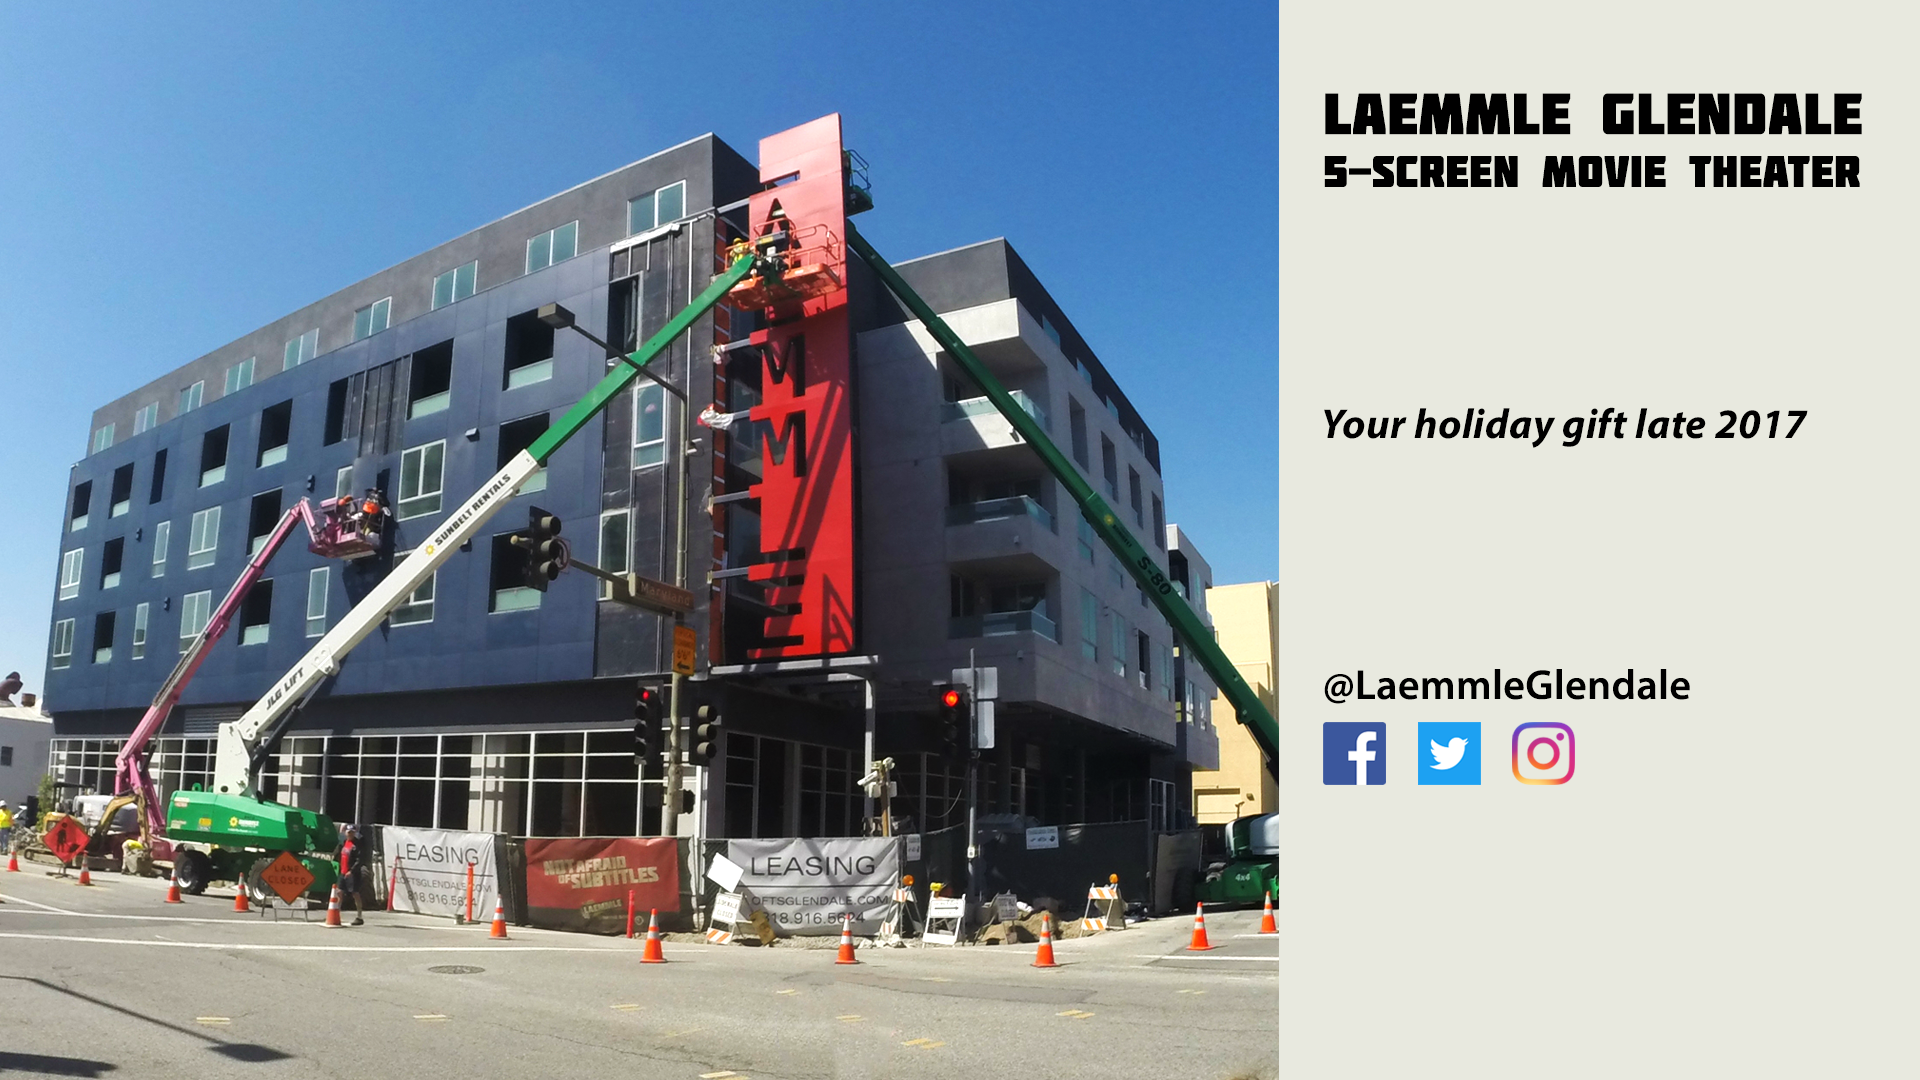 Laemmle glendale update sign installation video and for The glendale